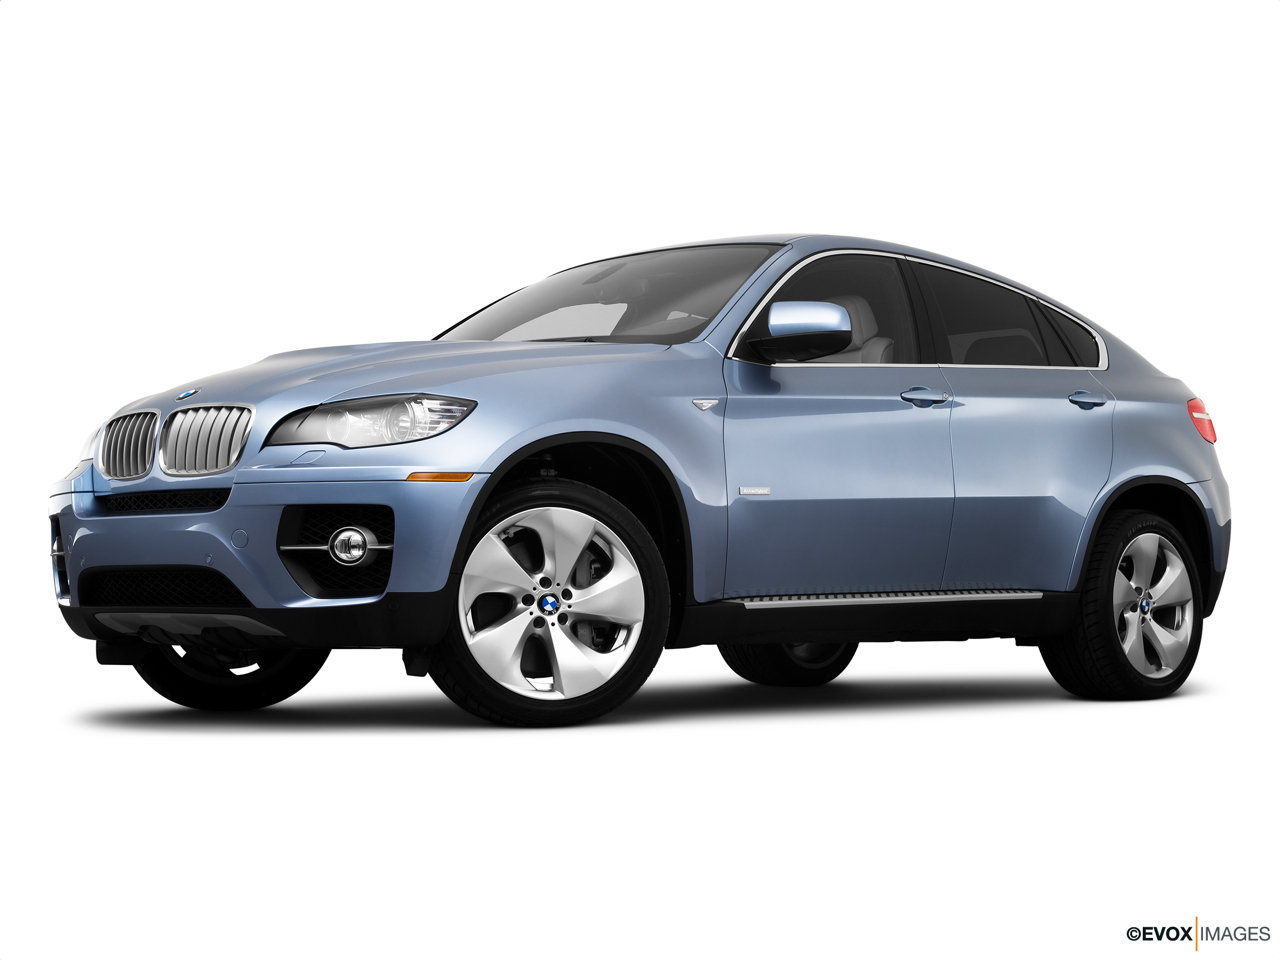 2010 BMW X6 Hybrid Base Low/wide front 5/8.